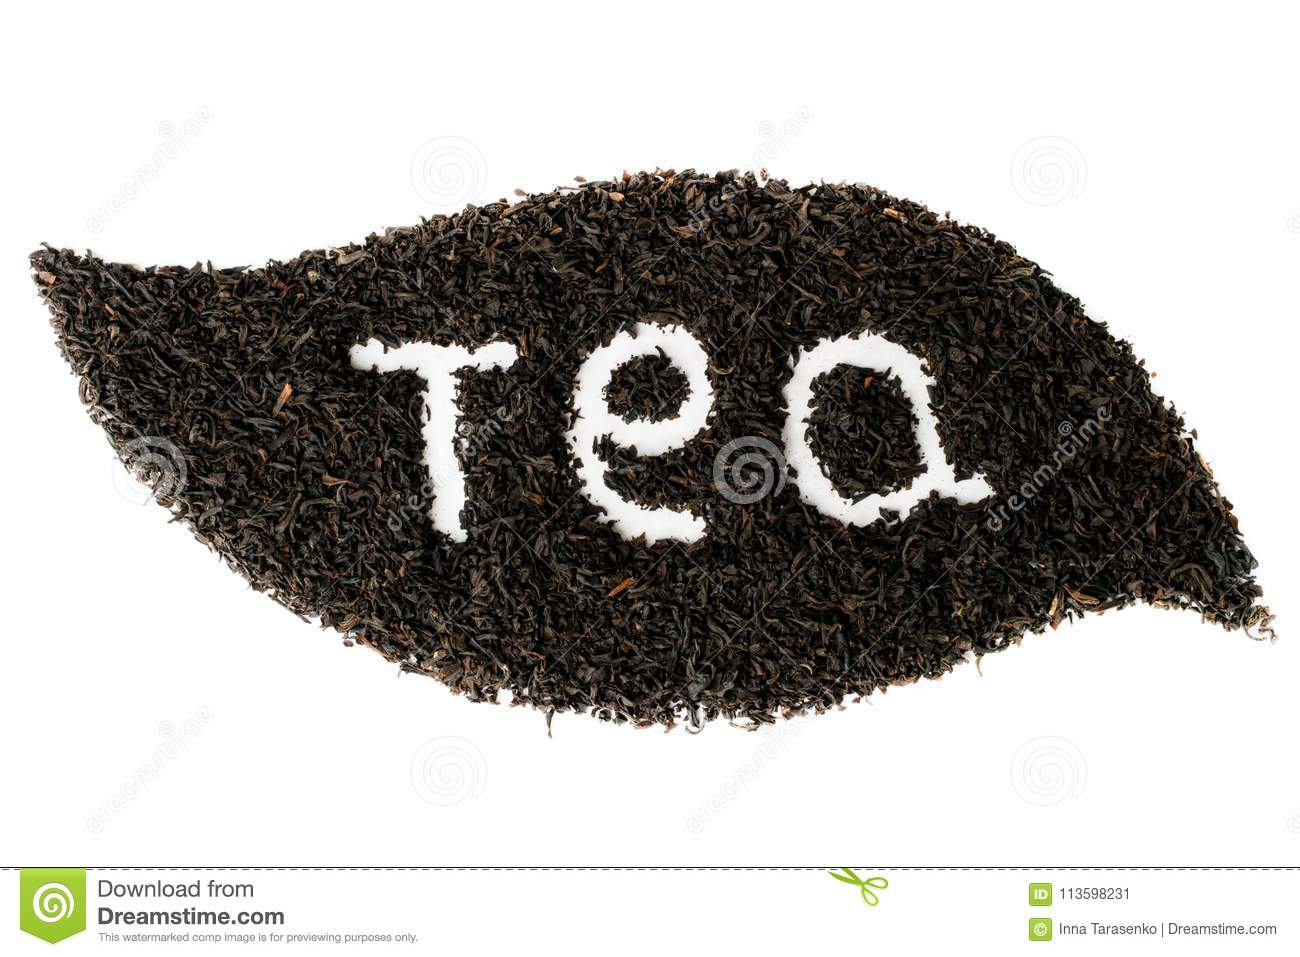 Black tea leaves lined with leaf shape on white background isolated.